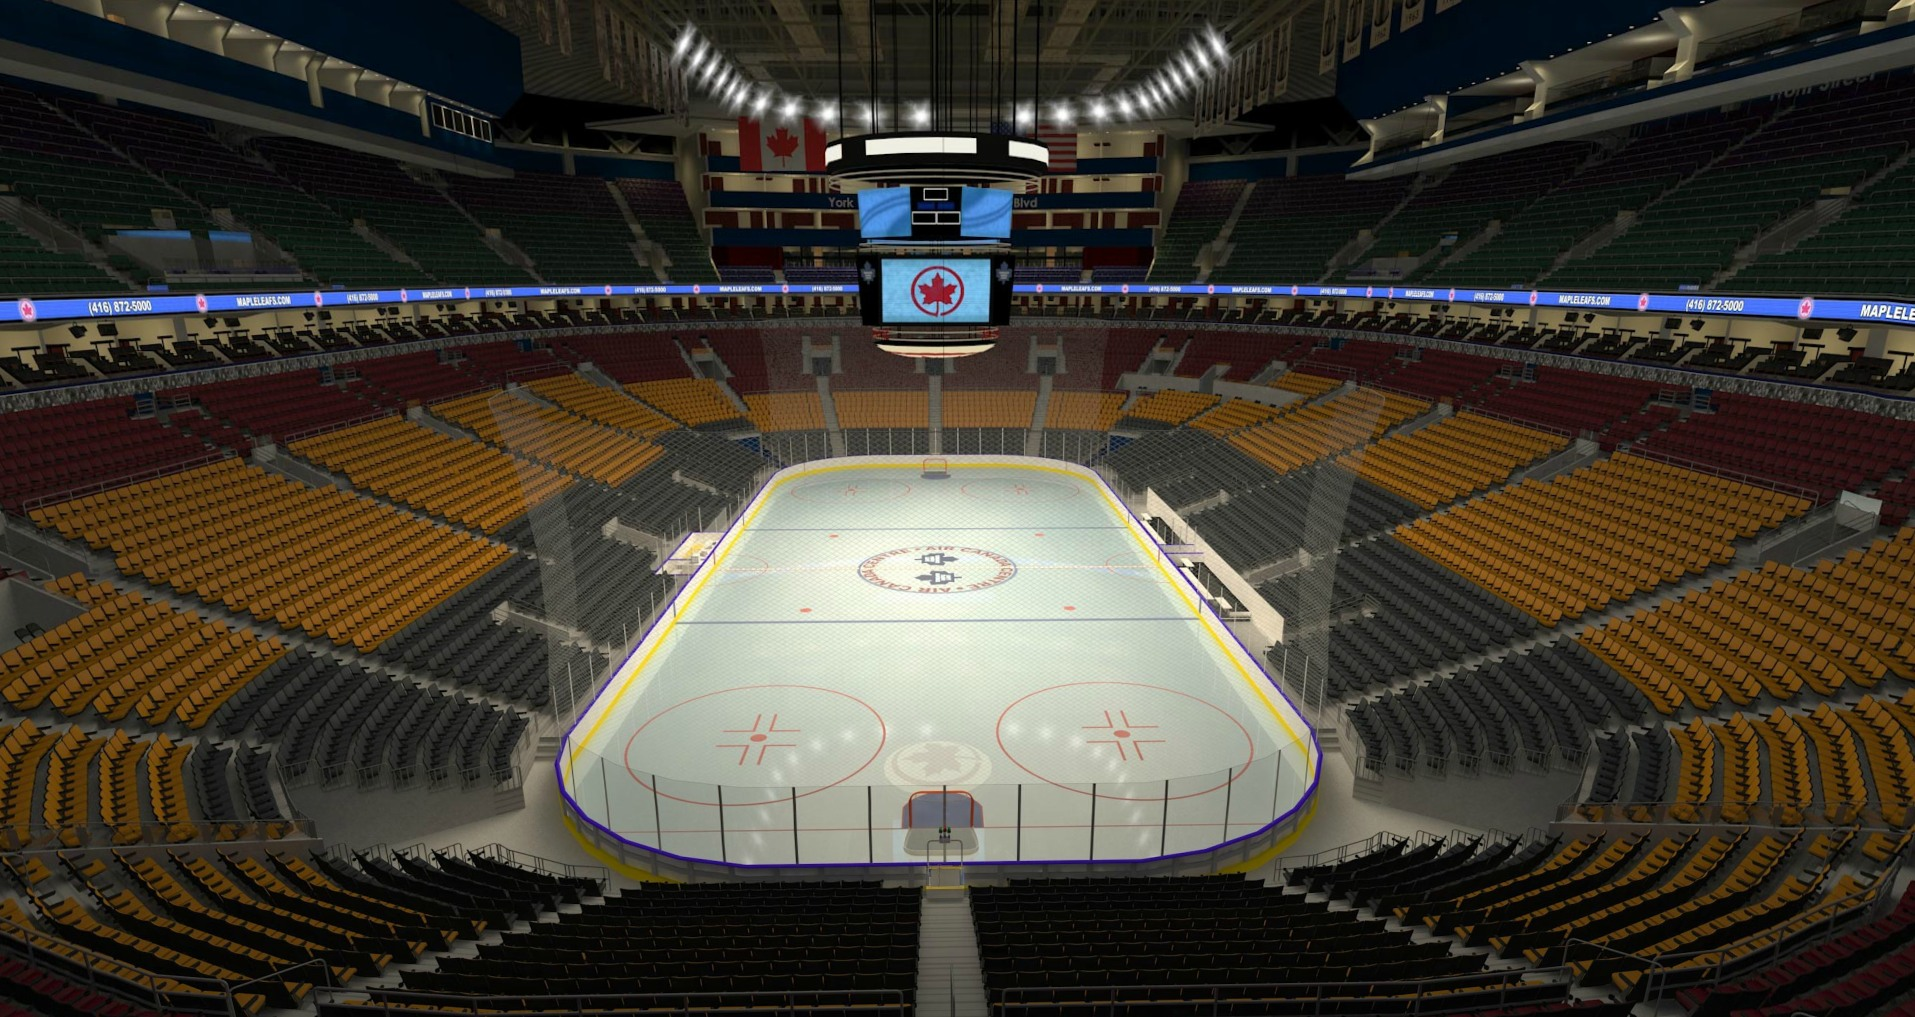 Sat, Mar 24, 2018 - Red Wings @ Leafs - Sec 303 Row 1 - Click Image to Close